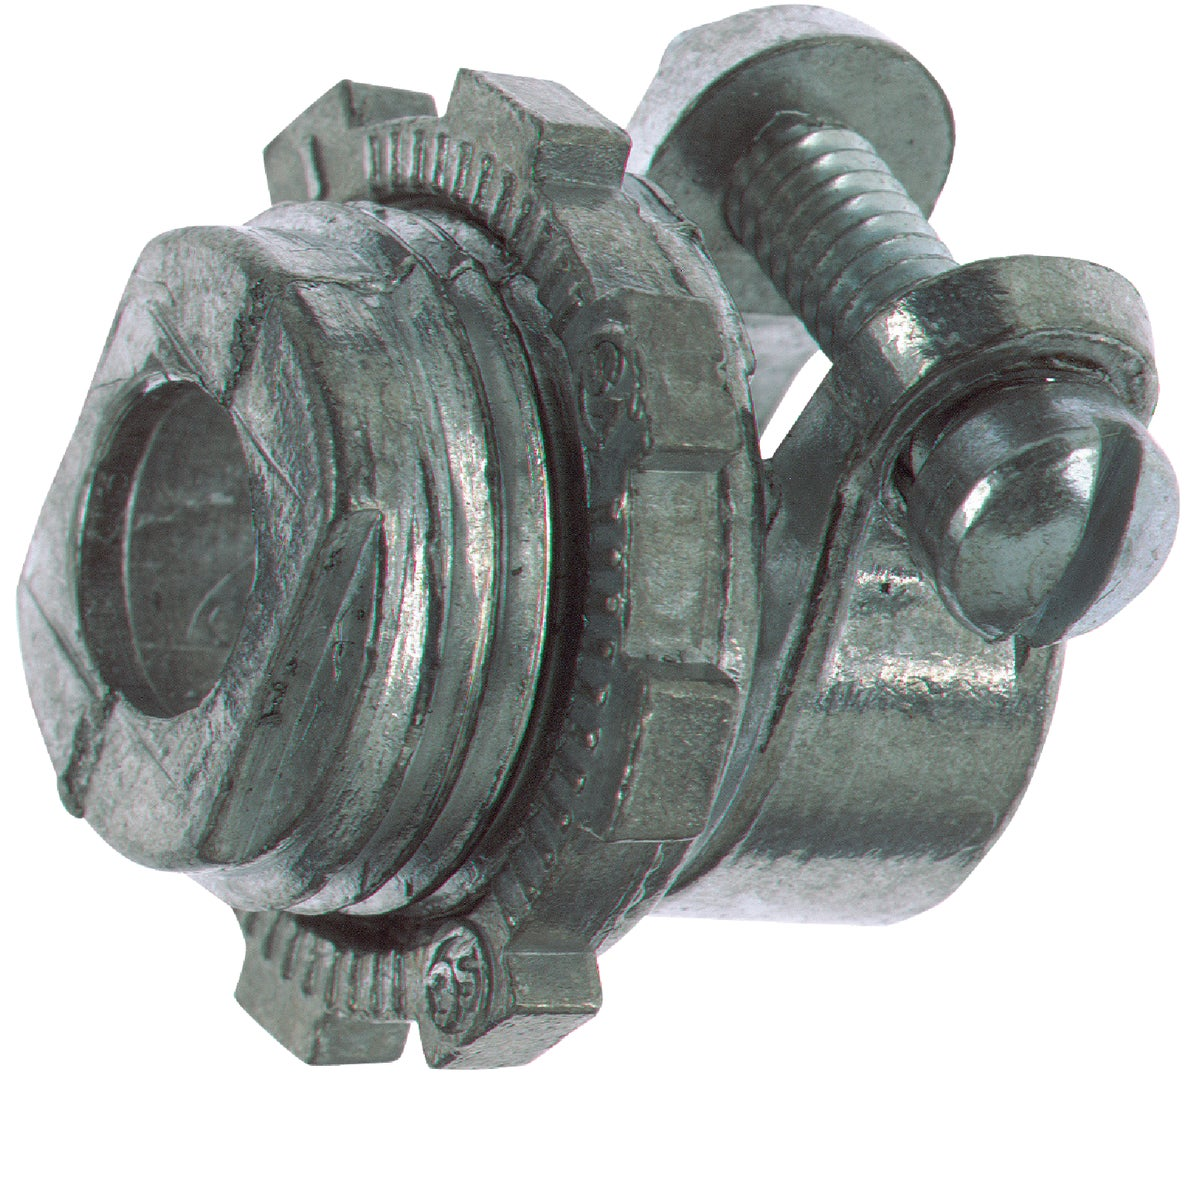 STRAIGHT FLEX CONNECTOR - XC2691 by Thomas & Betts